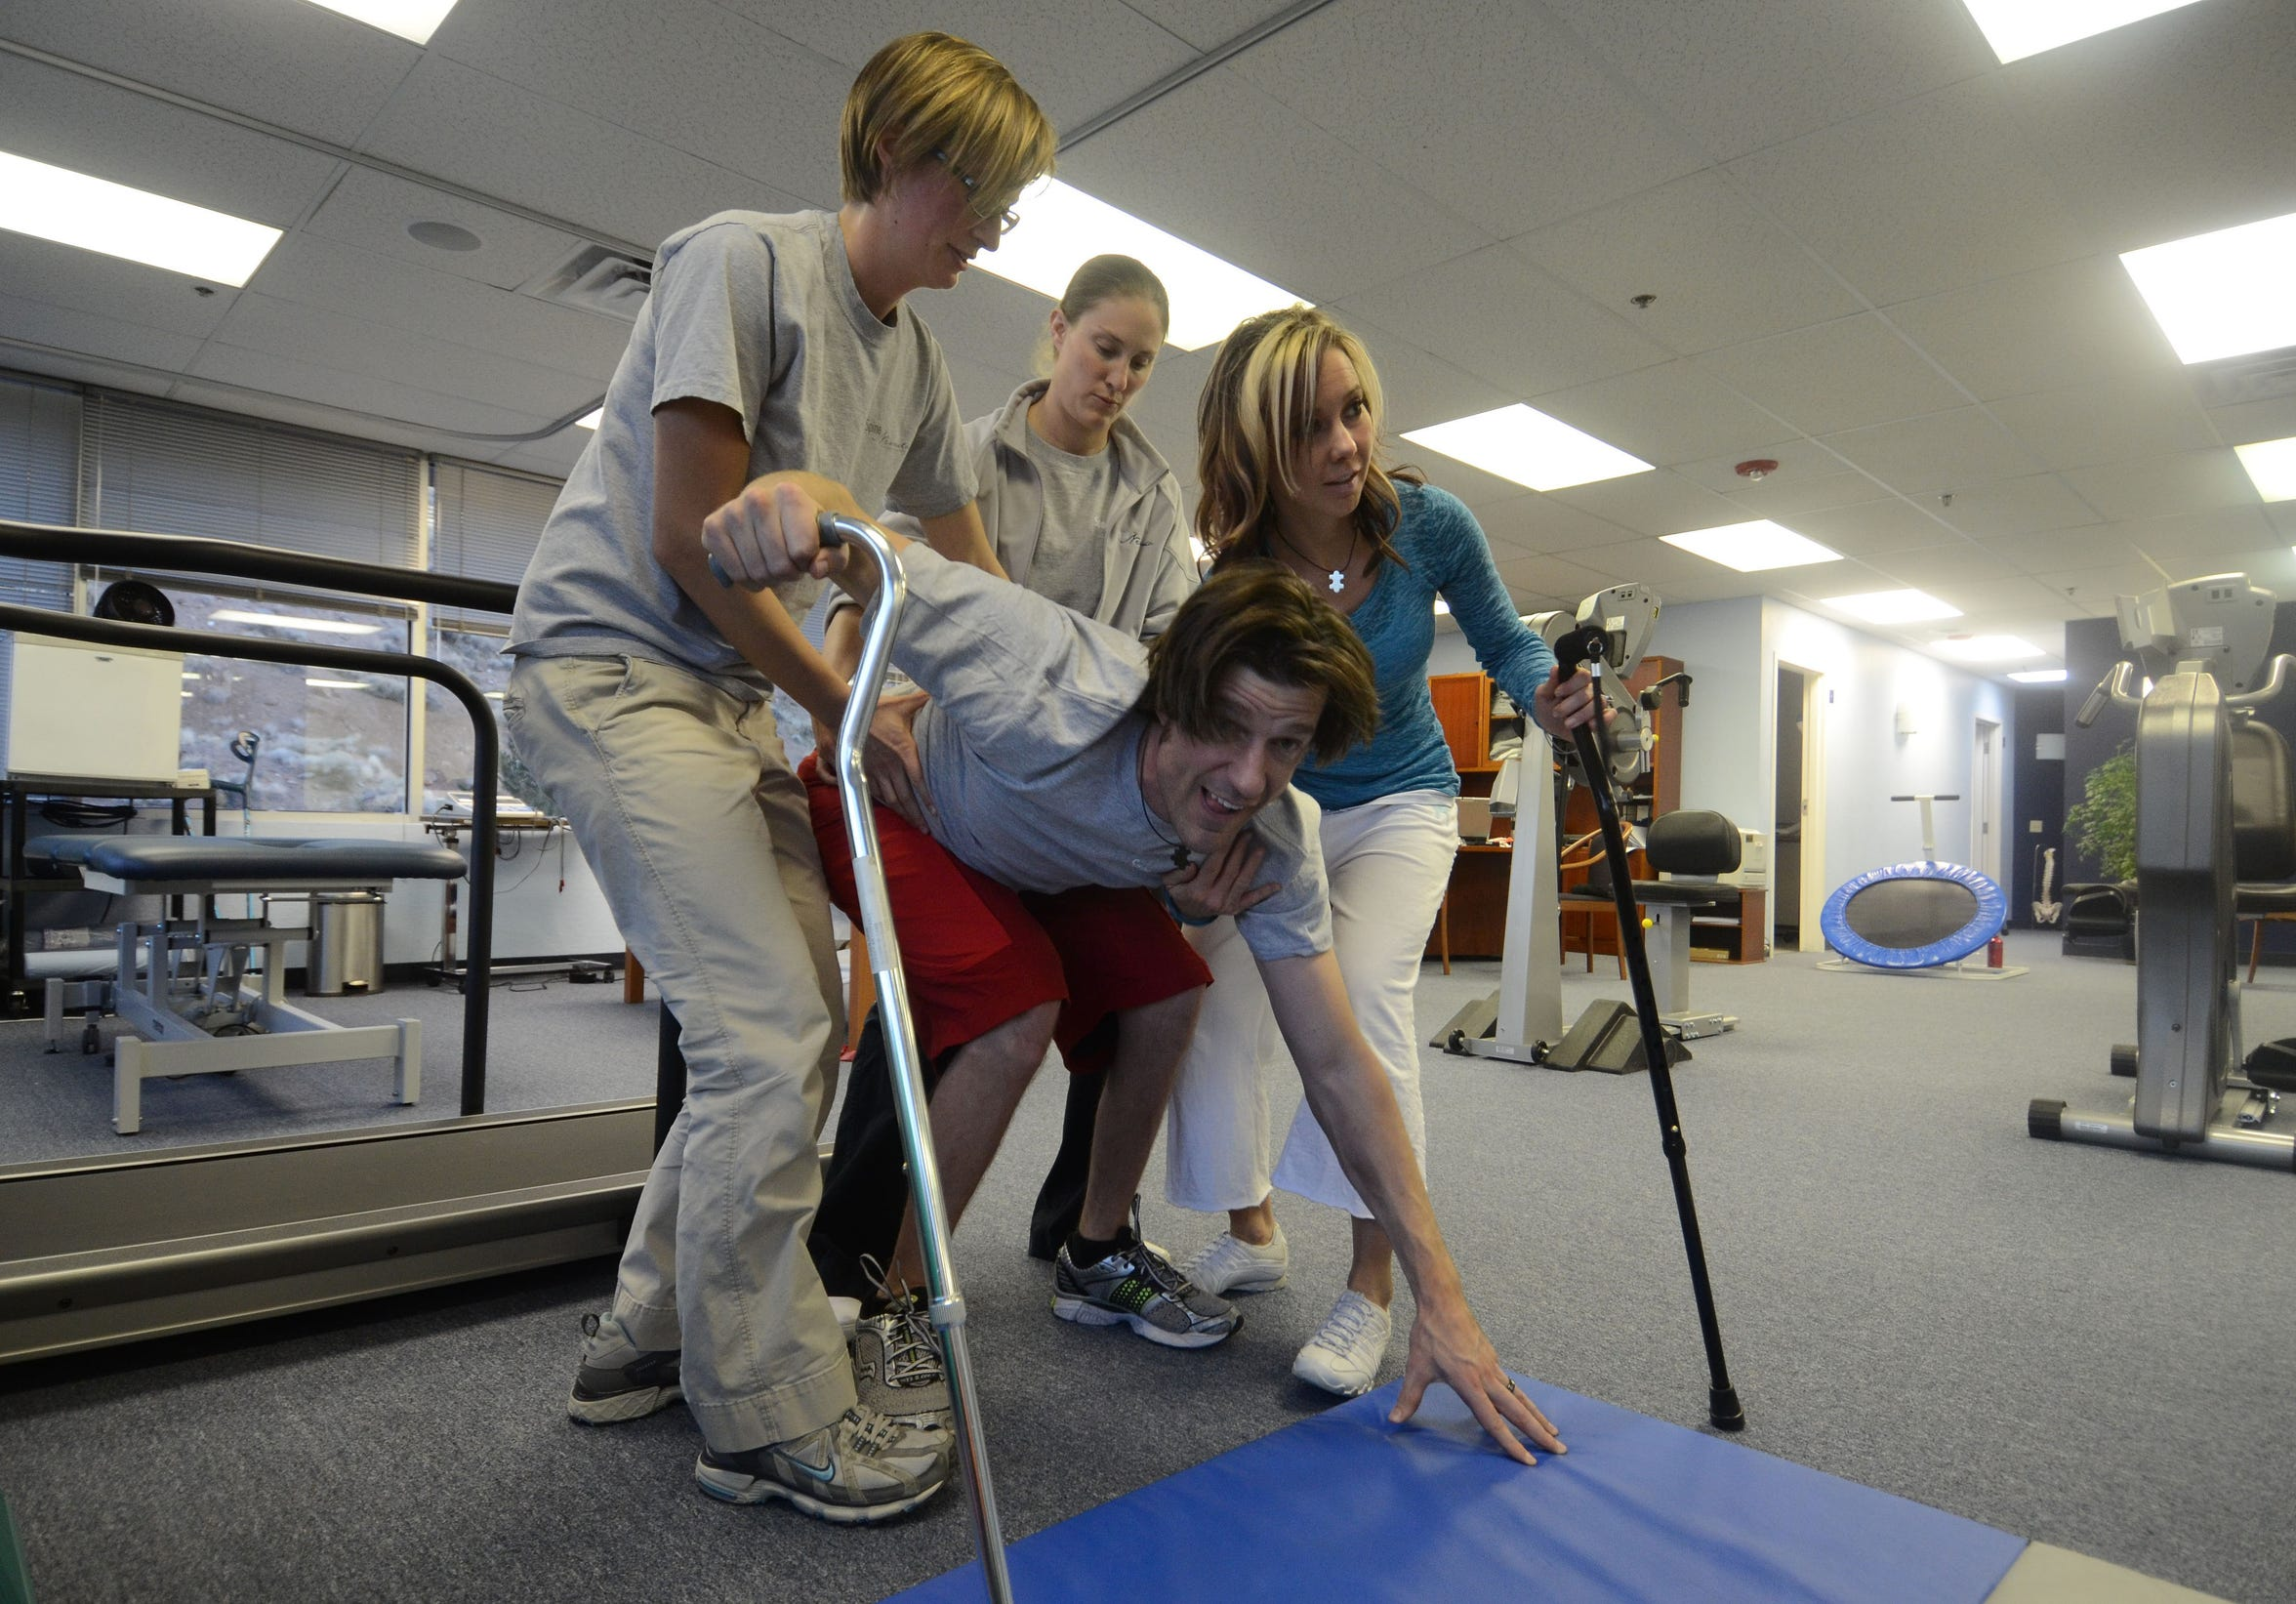 Thais Mollet and Shawna Korgan help Grant up off the matt during a physical therapy session at Spine Nevada.